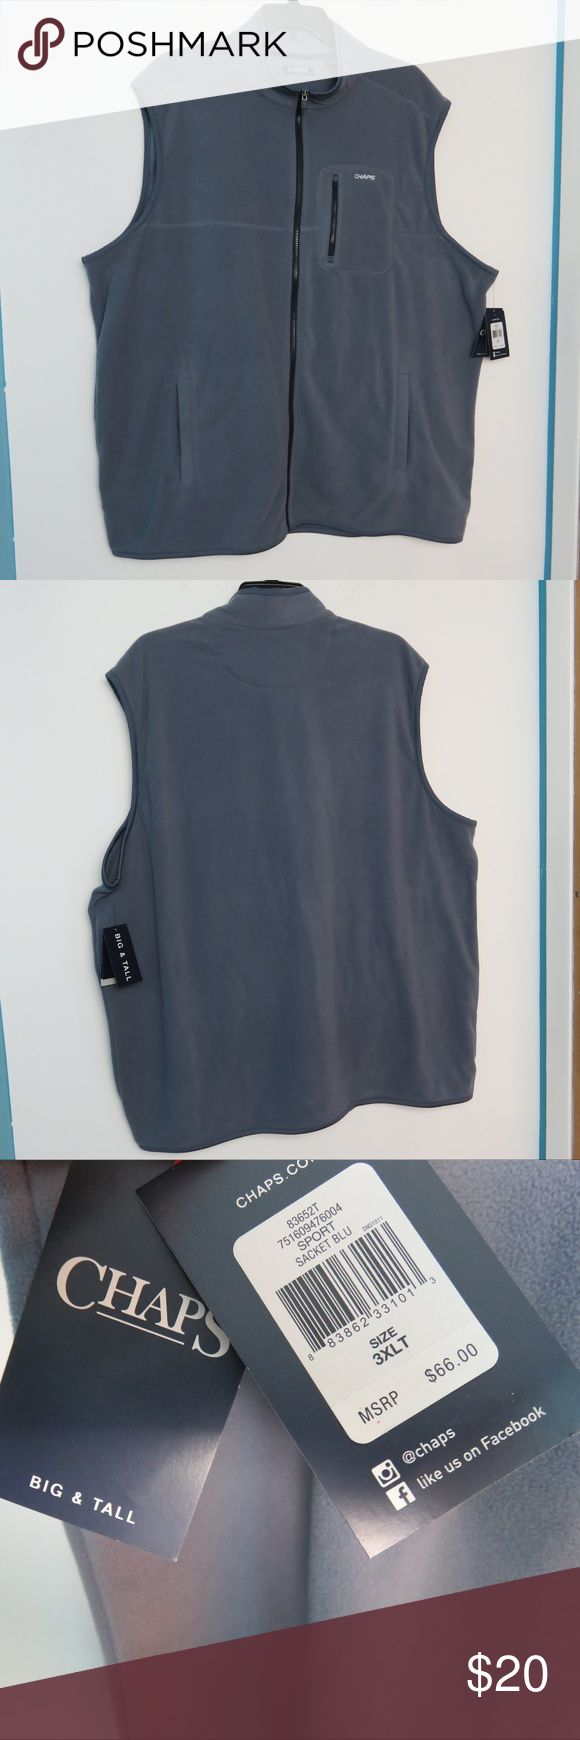 """Chaps Sport 3XLT 3XL Fleece Vest Blue Gray NWT NWT new with tags retail price $66 Men's 3XLT, 3XL, 3XB Chaps Sport Big & Tall  Full zip Front Sleeveless Fleece Vest Blue Gray Grey ( Sacket Blu ) 100% Polyester 3 Pockets  Bought for golf in chilly weather  Measures chest underarm to underarm 31"""" Length 34"""" 6.6 bin 26 MP UPC: 883862331013 Don't forget you can always bundle other items and pay one shipping price Chaps Jackets & Coats Vests"""